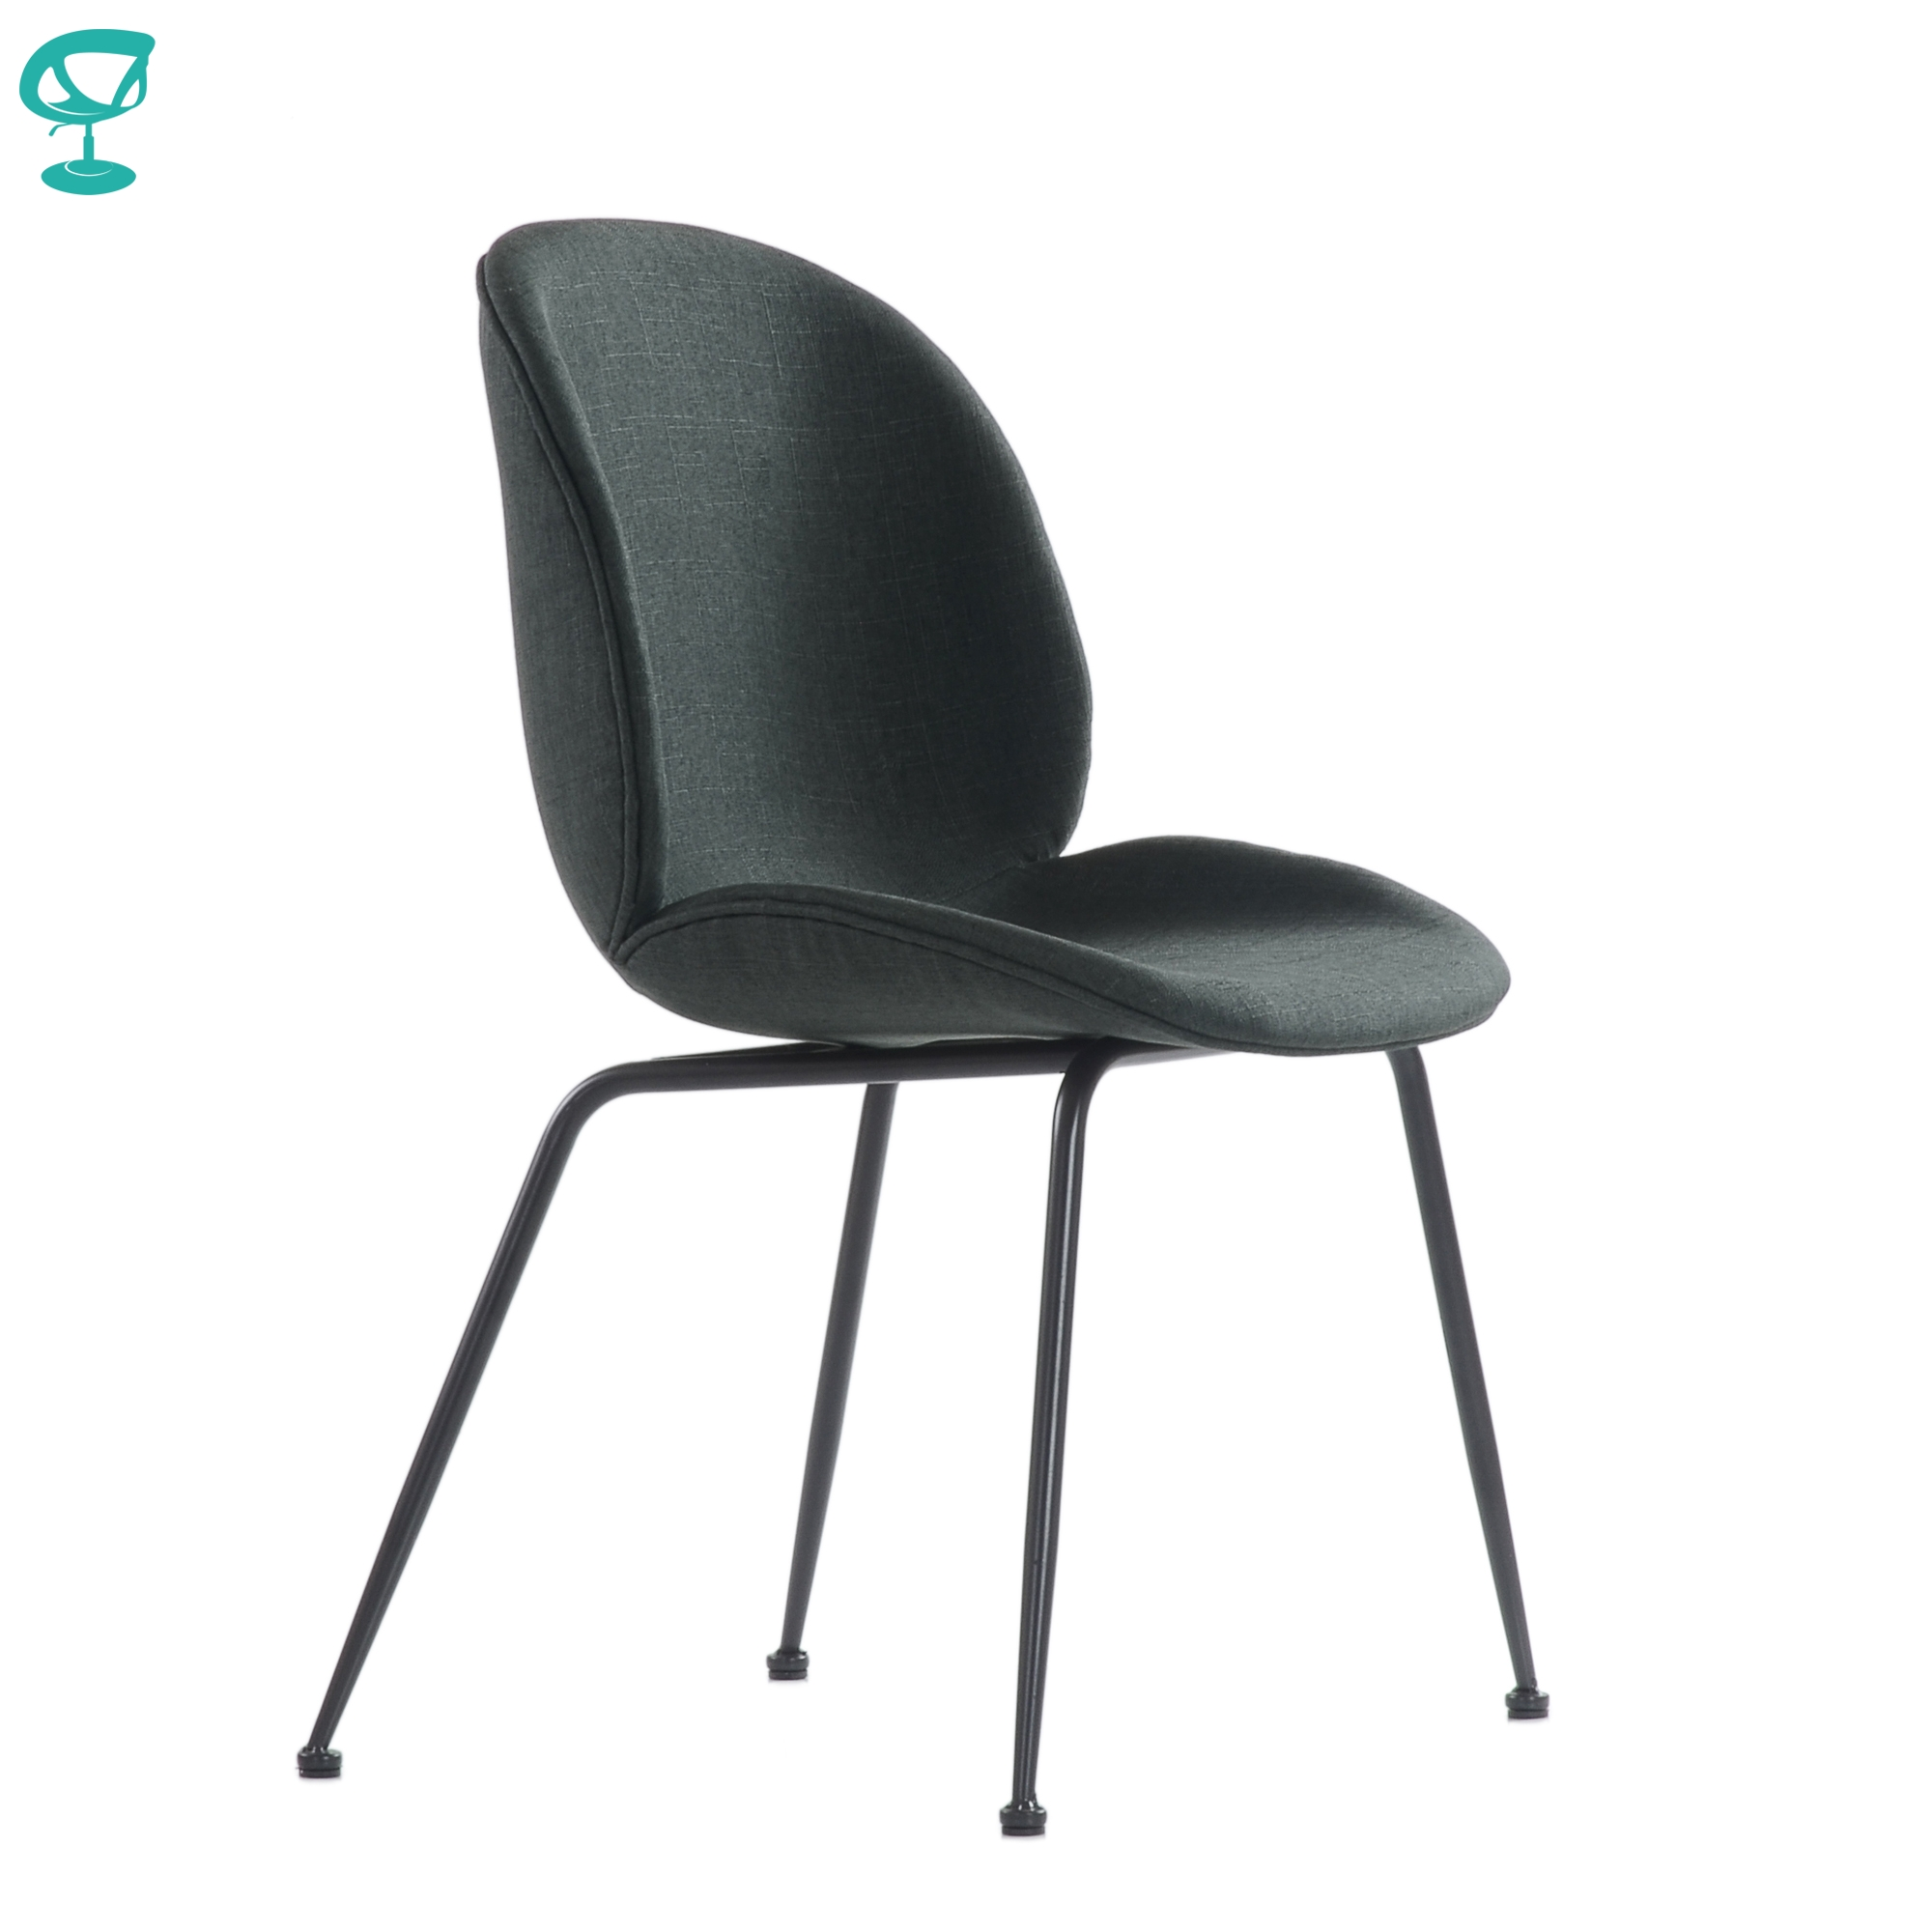 95740 Barneo S-17 Kitchen Chair On Metal Legs Seat Fabric Chair For Living Room Chair Dining Chair Furniture For Kitchen